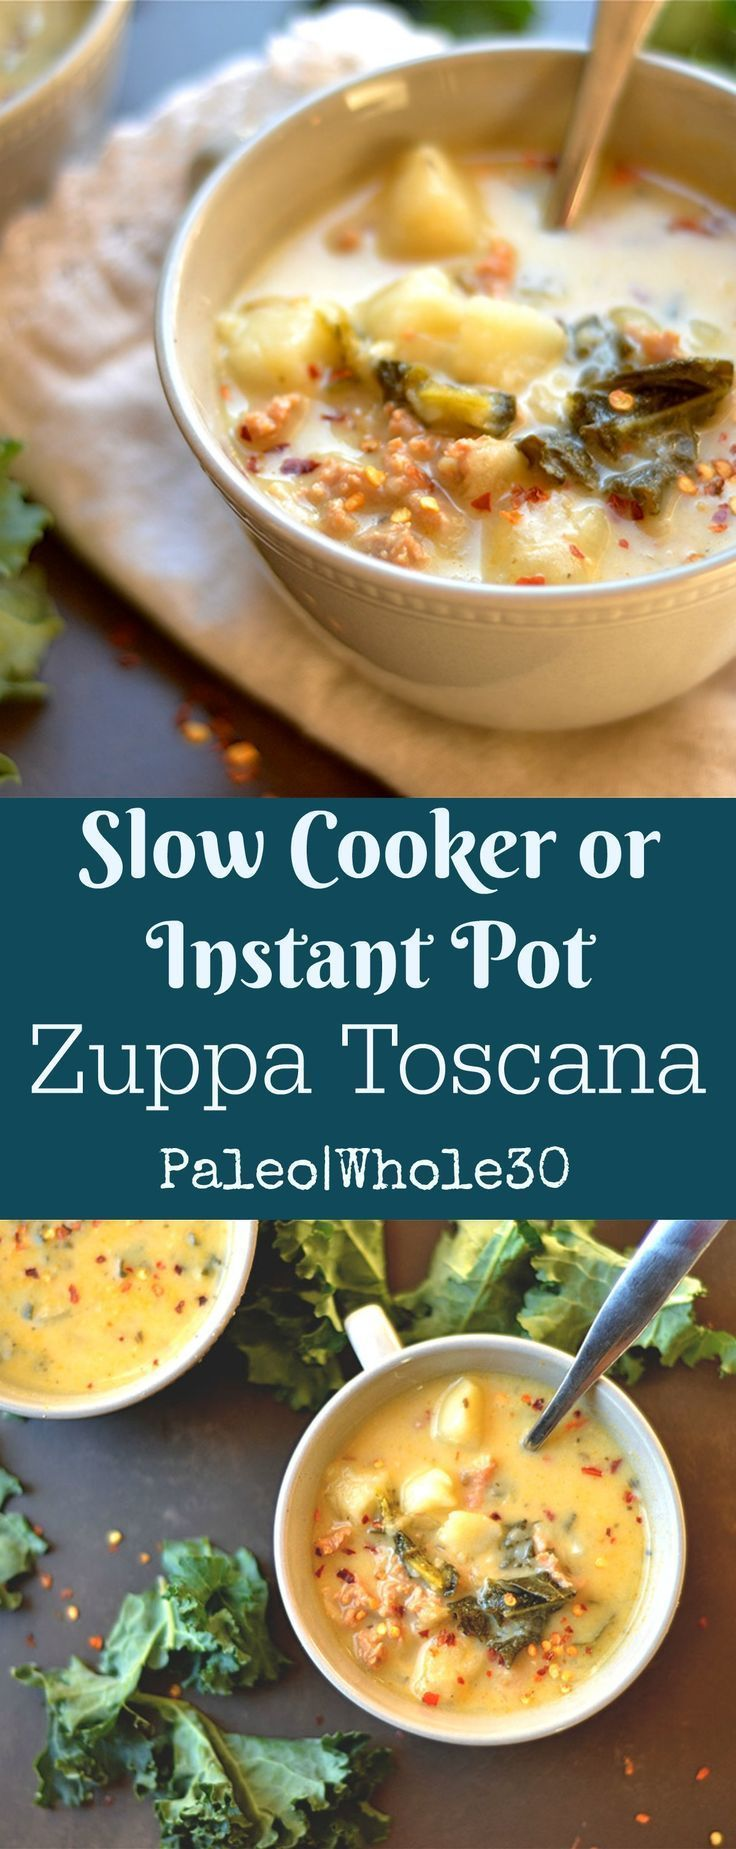 This classic soup has all the SAME flavor you love, and made so easily in the Instant Pot or Slow Cooker!